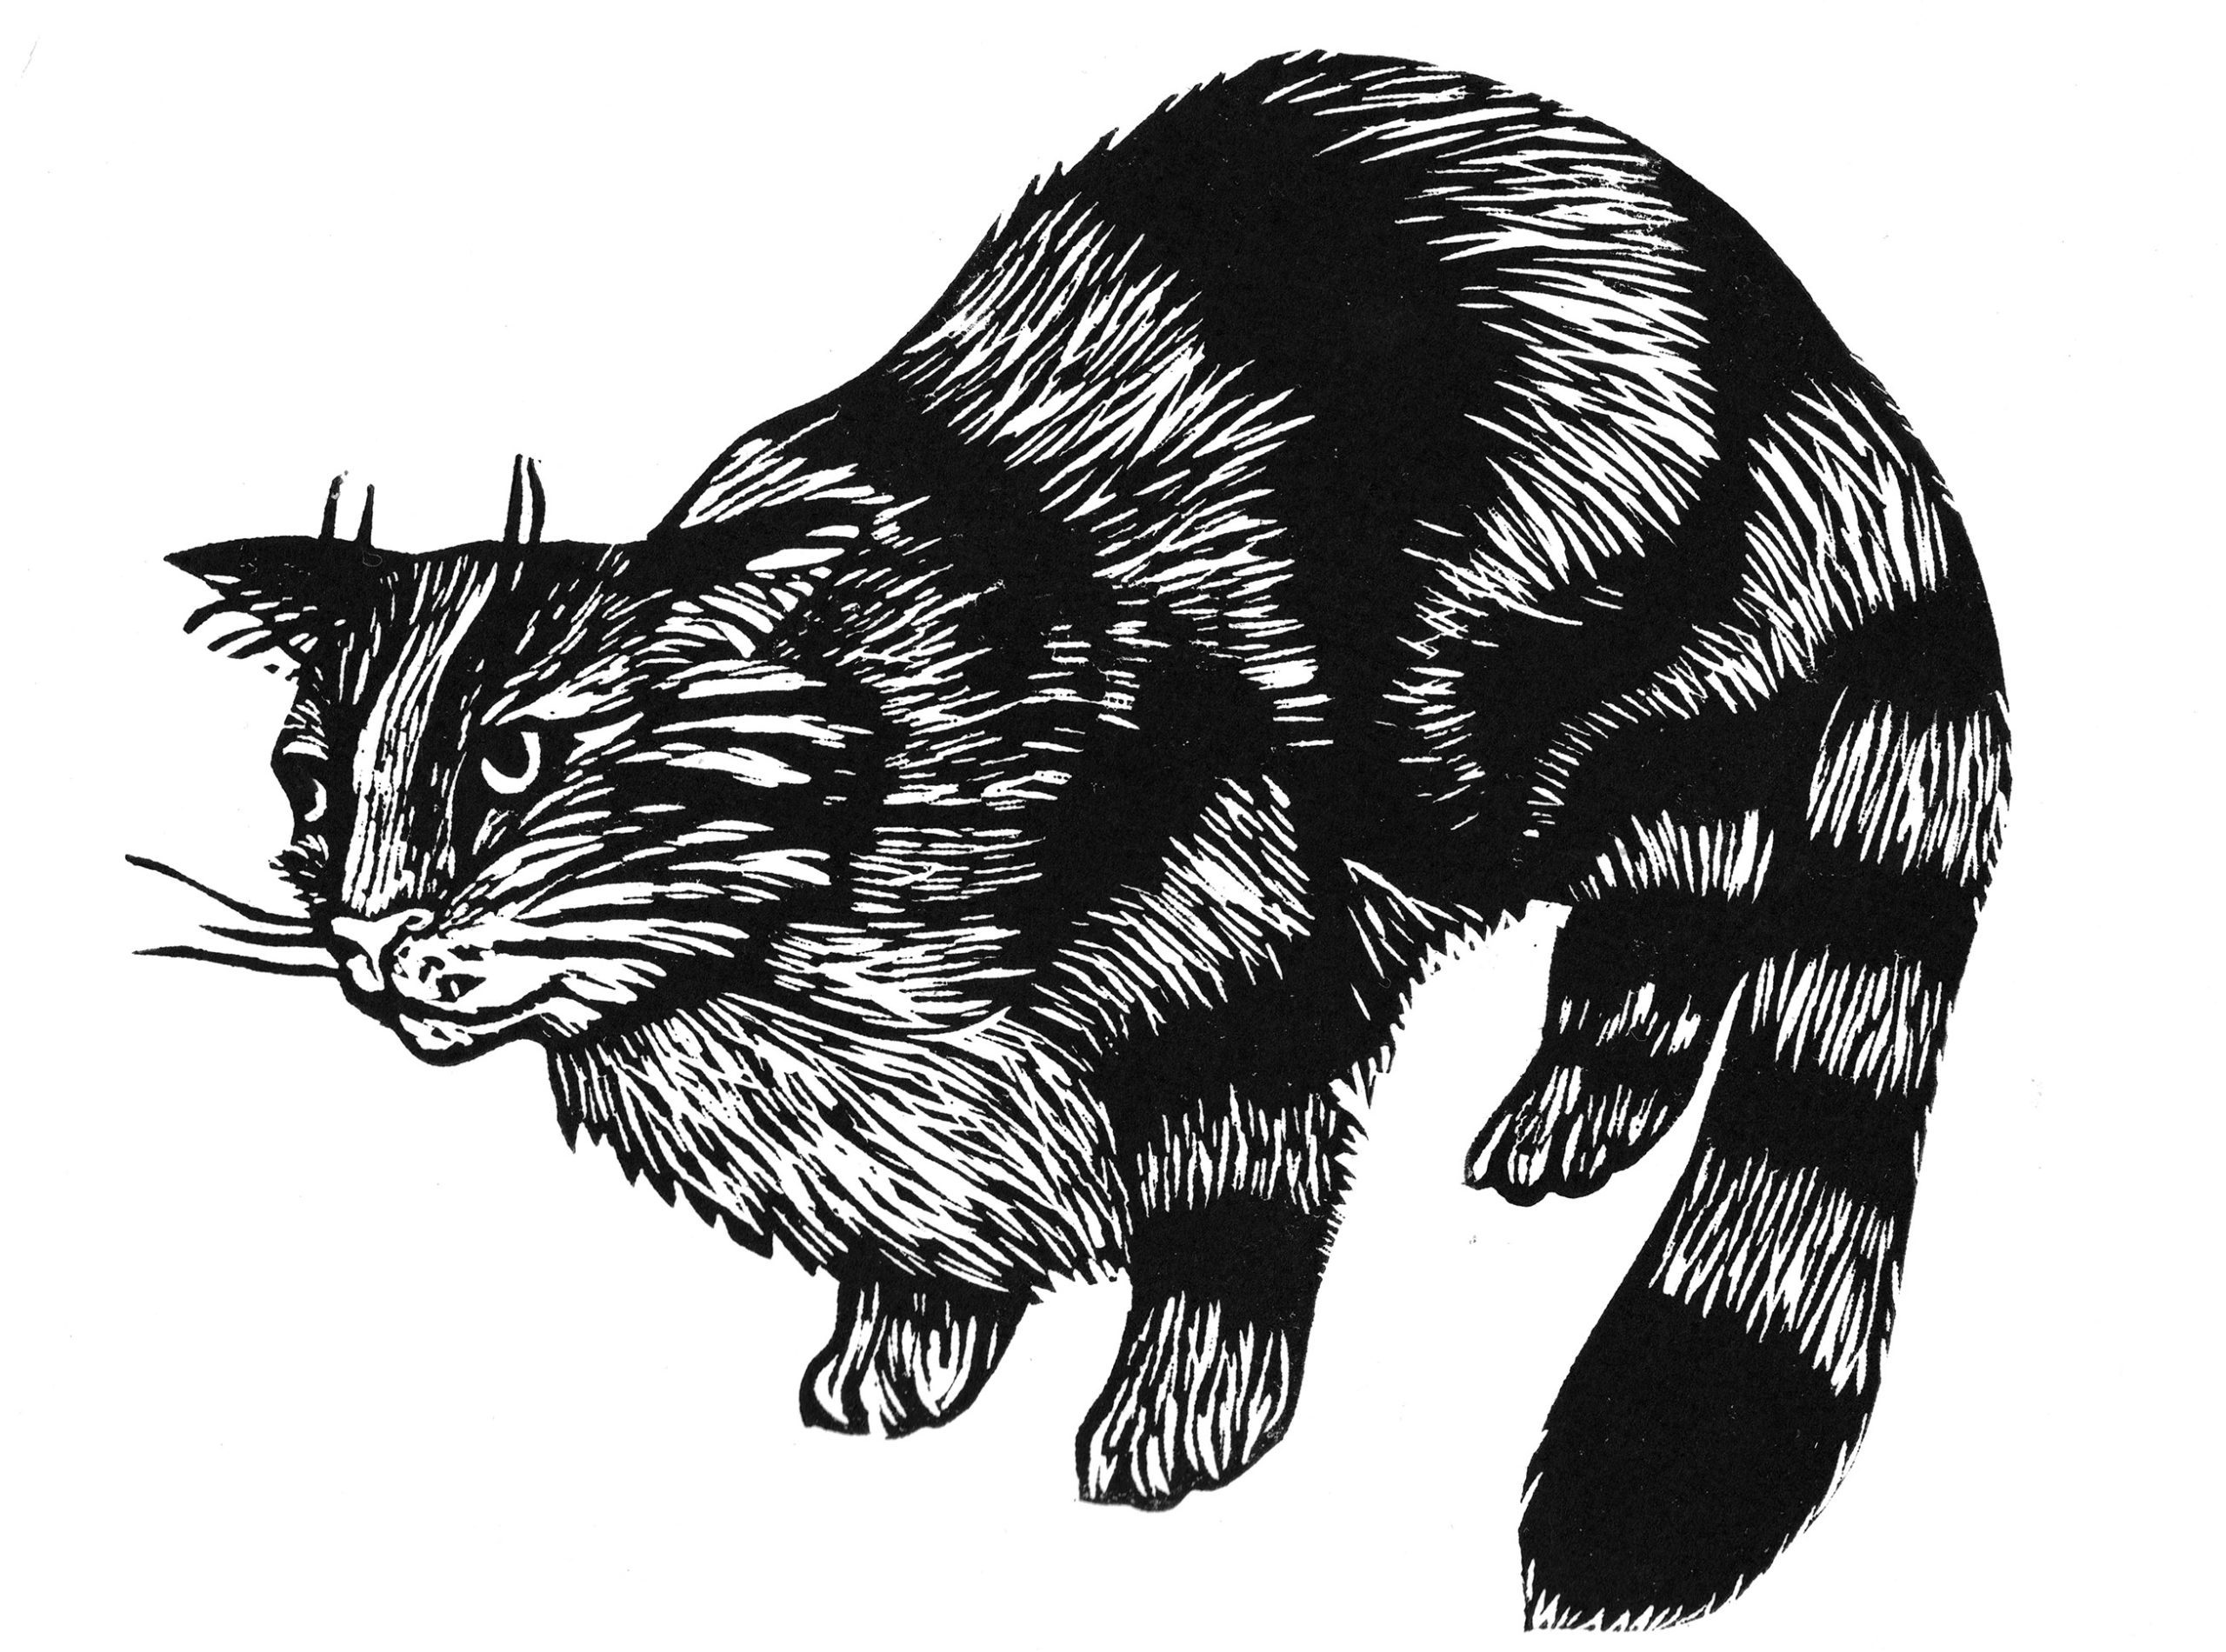 Kellas Cat - a large black cat found in Scotland, named after the village of Kellas, Moray, where it was first found.